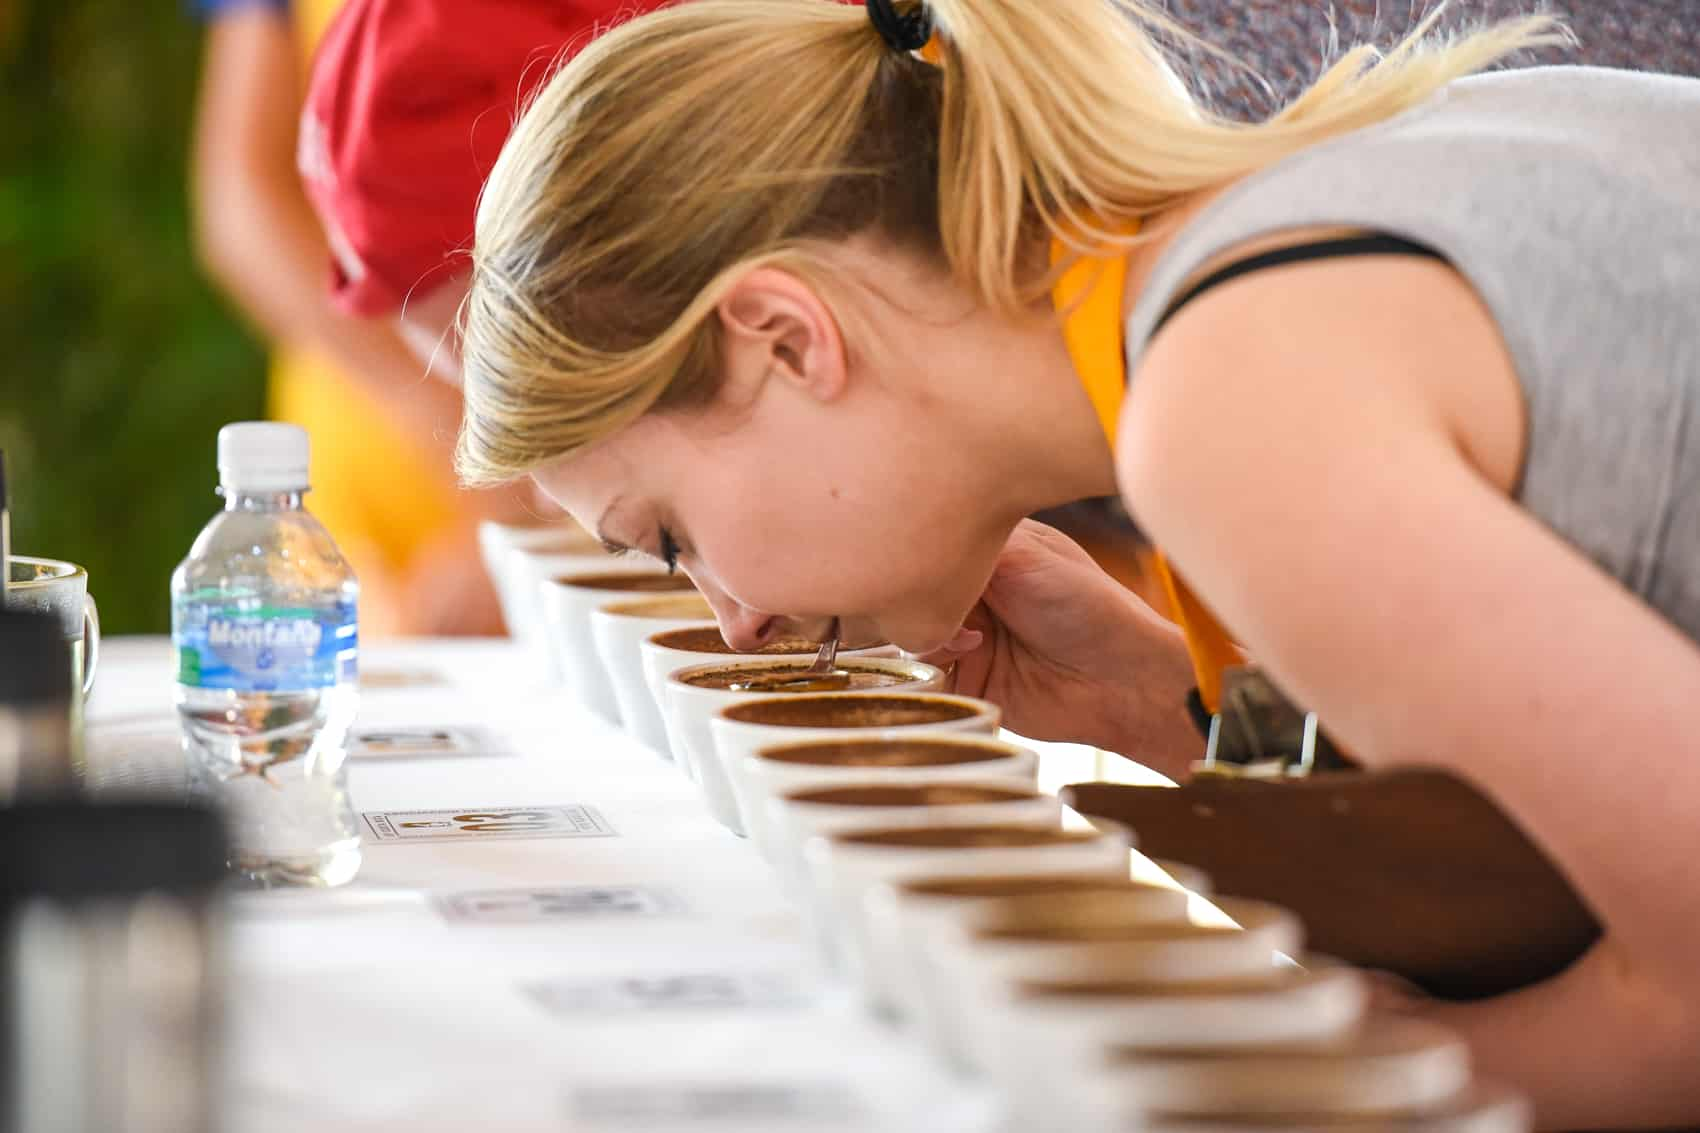 A judge cupping at the 2015 Cup of Excellence at the Hyndham Hotel in San José, May 13, 2015.